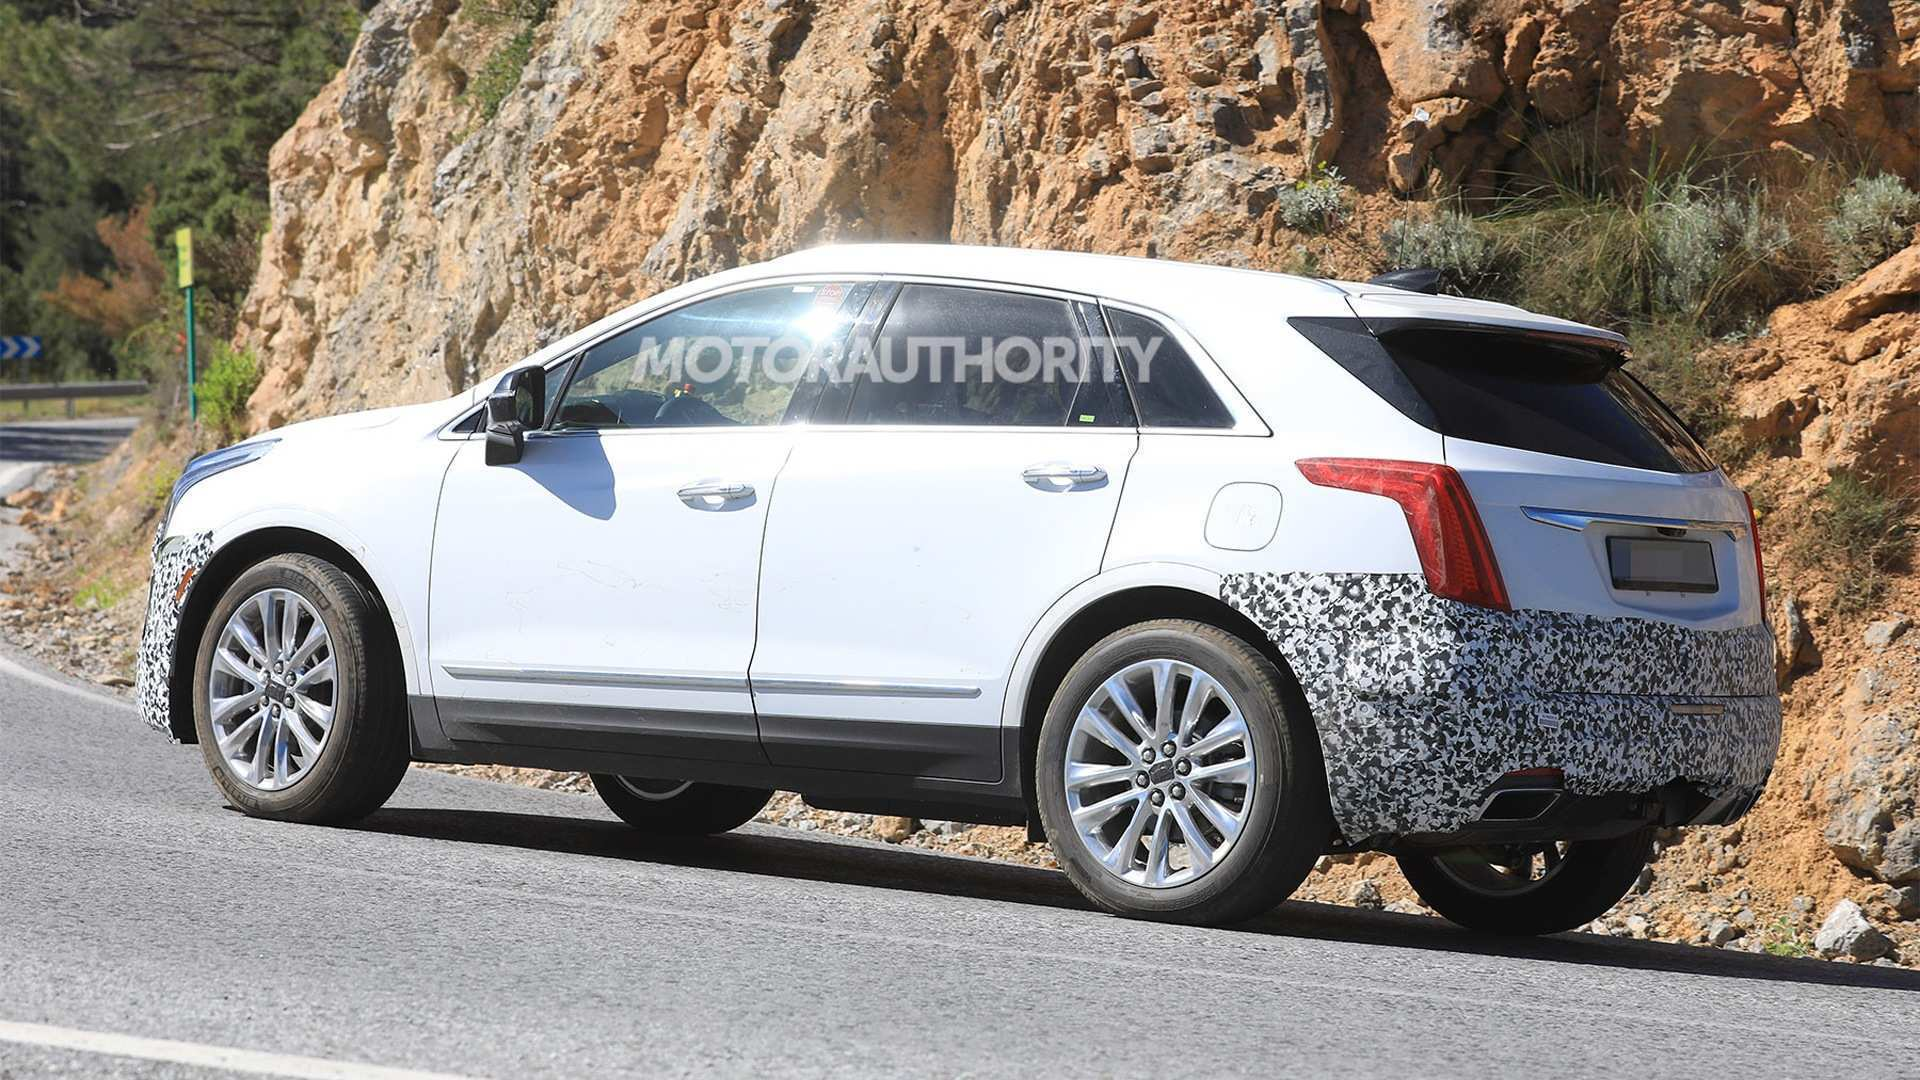 20 New 2019 Spy Shots Cadillac Xt5 Review